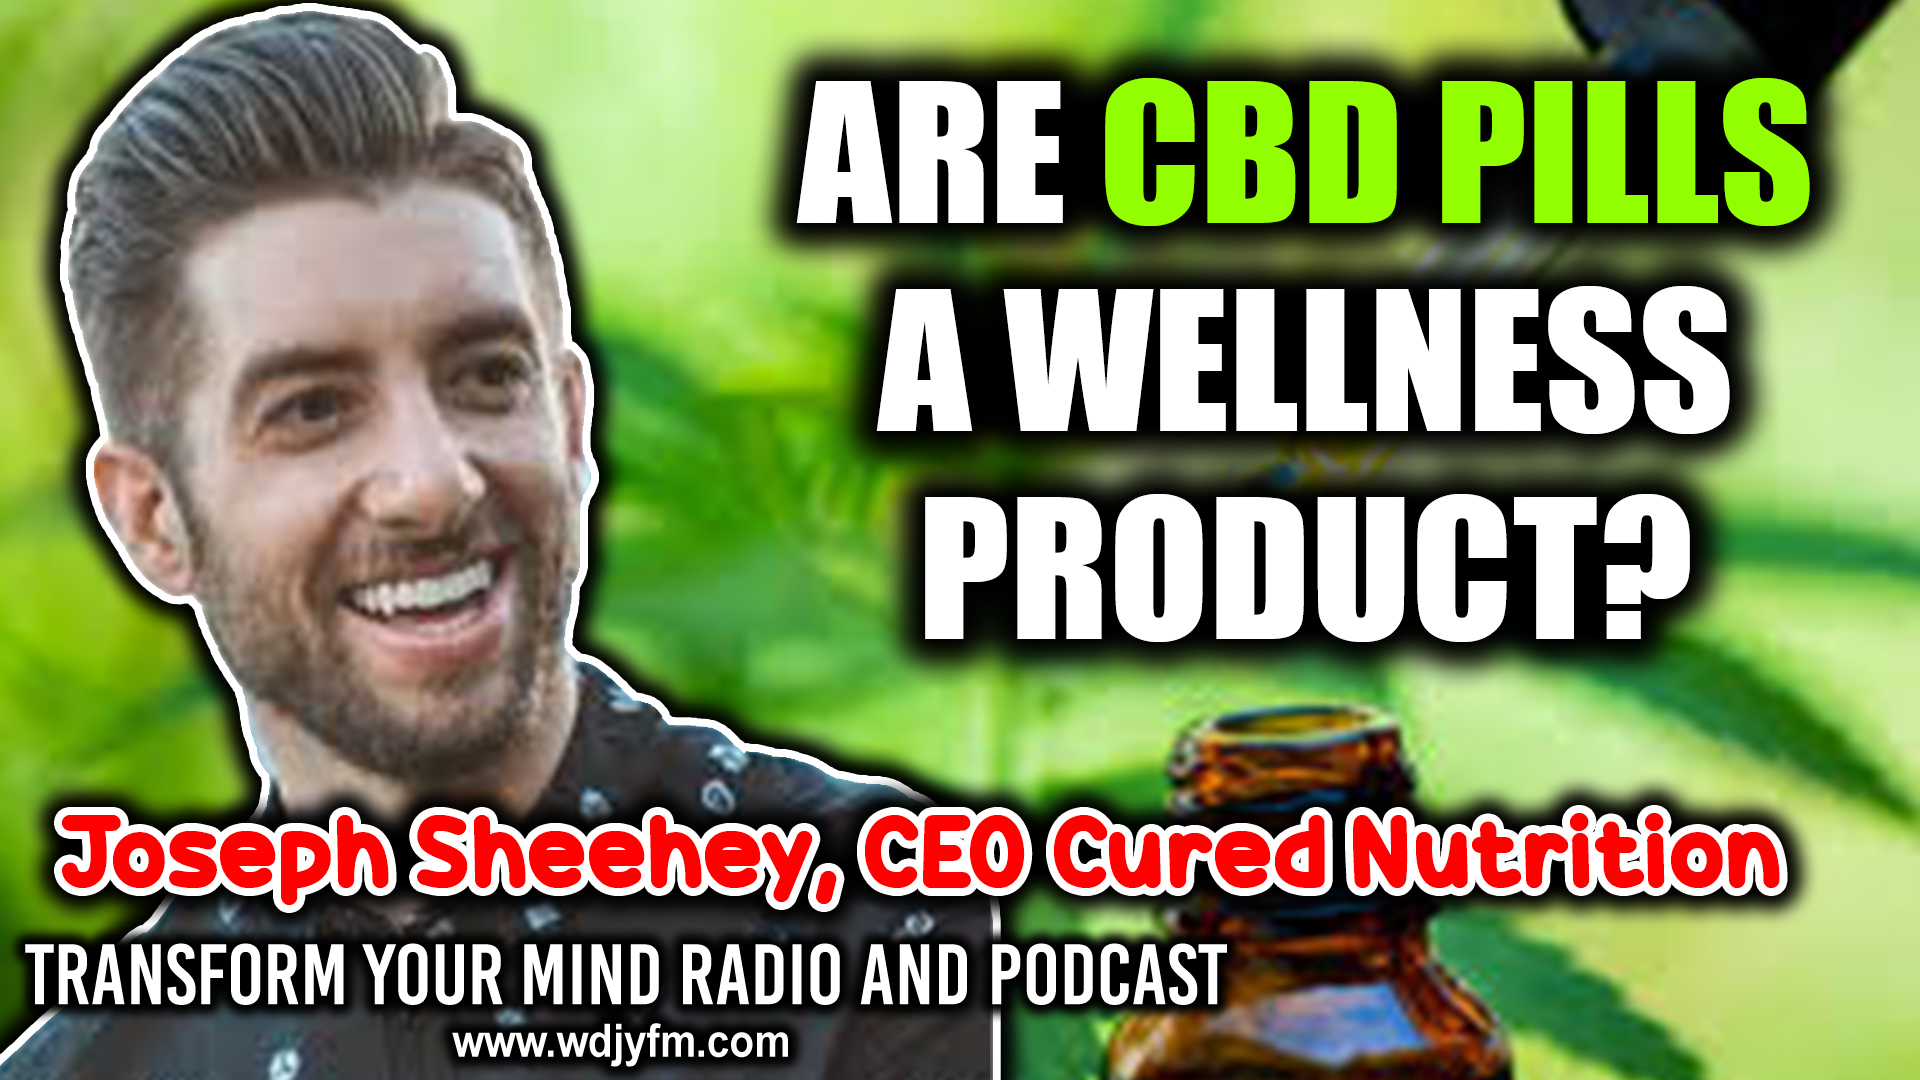 Joseph Sheehey CBD pills